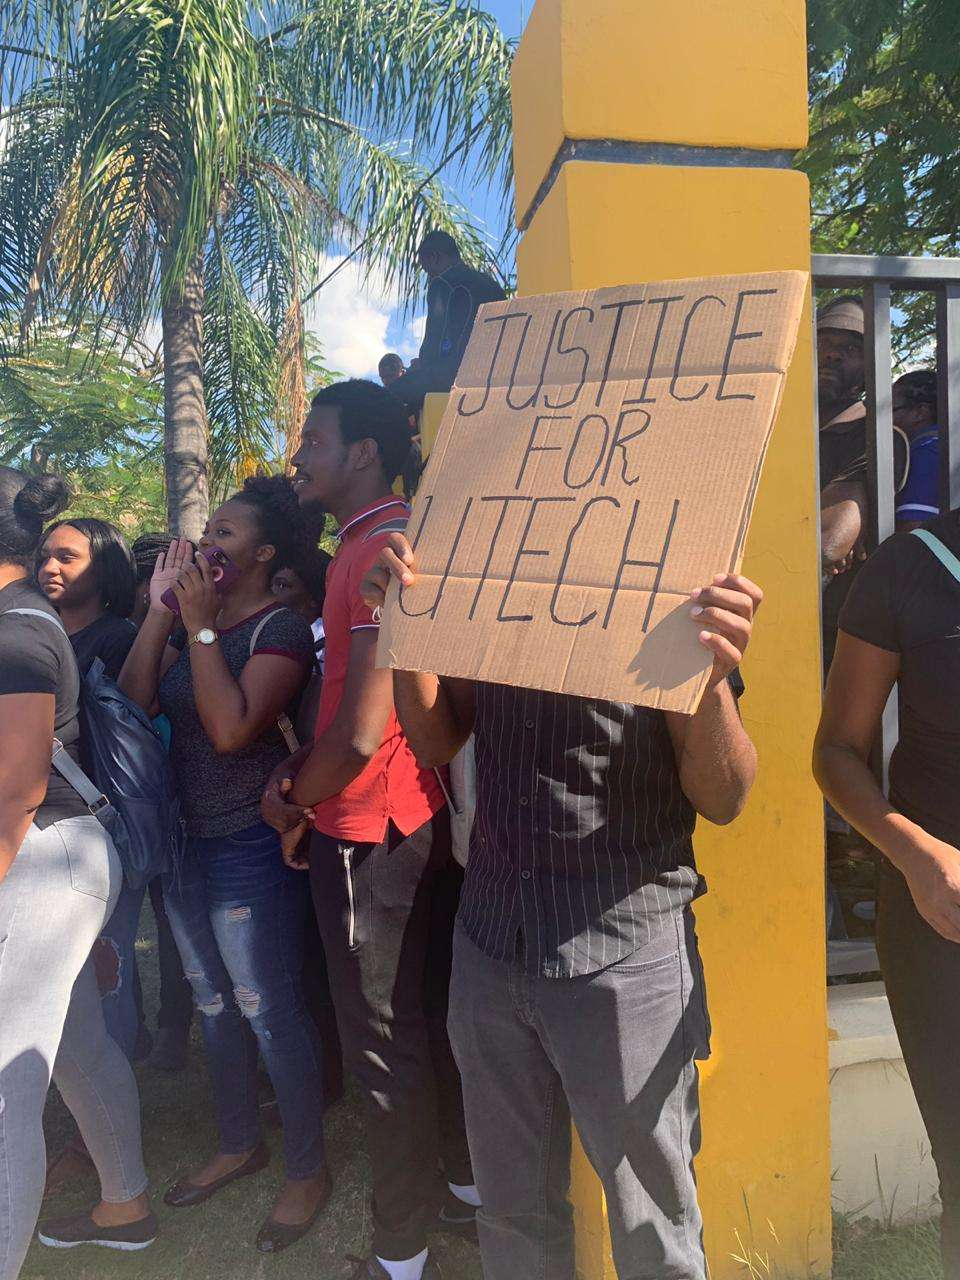 Education Minister Describes UTech Protest Action as 'Misleading' and 'Unfortunate'